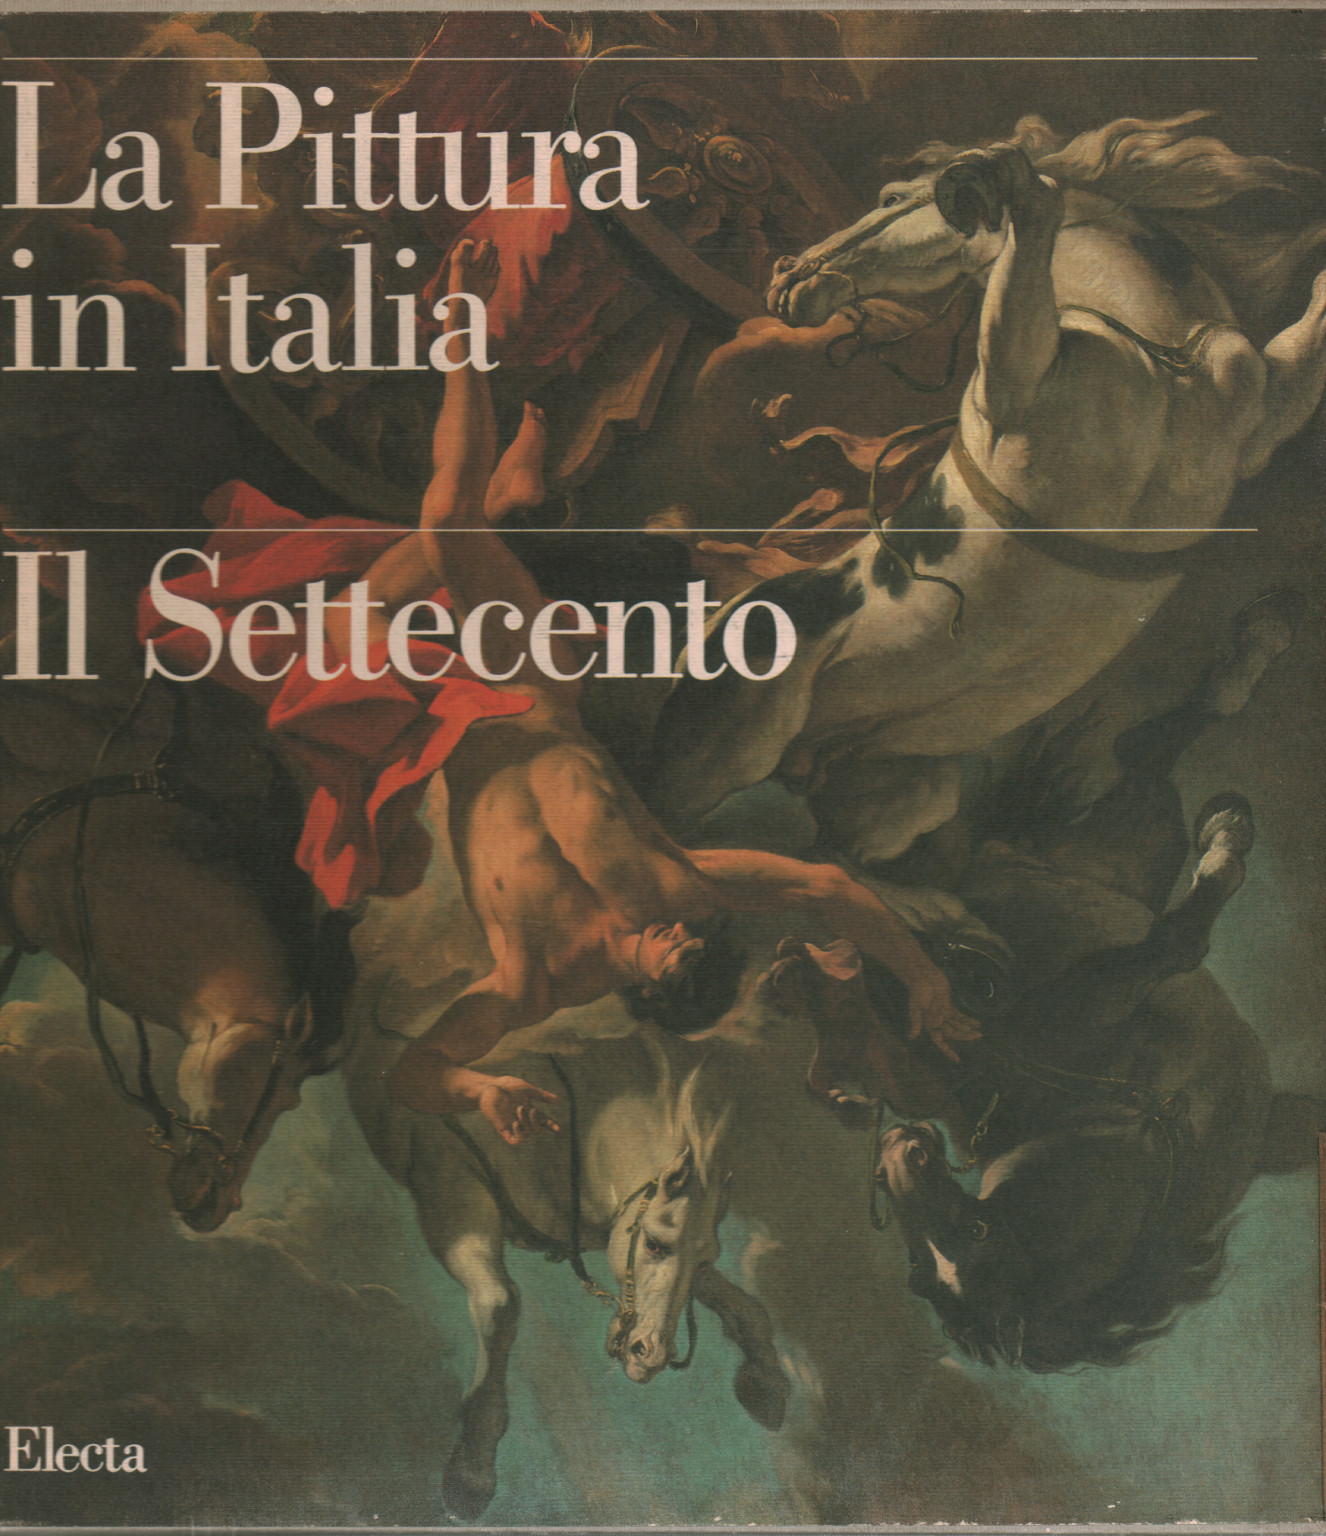 The painting in Italy. The Eighteenth century (2 Volumes), s.a.